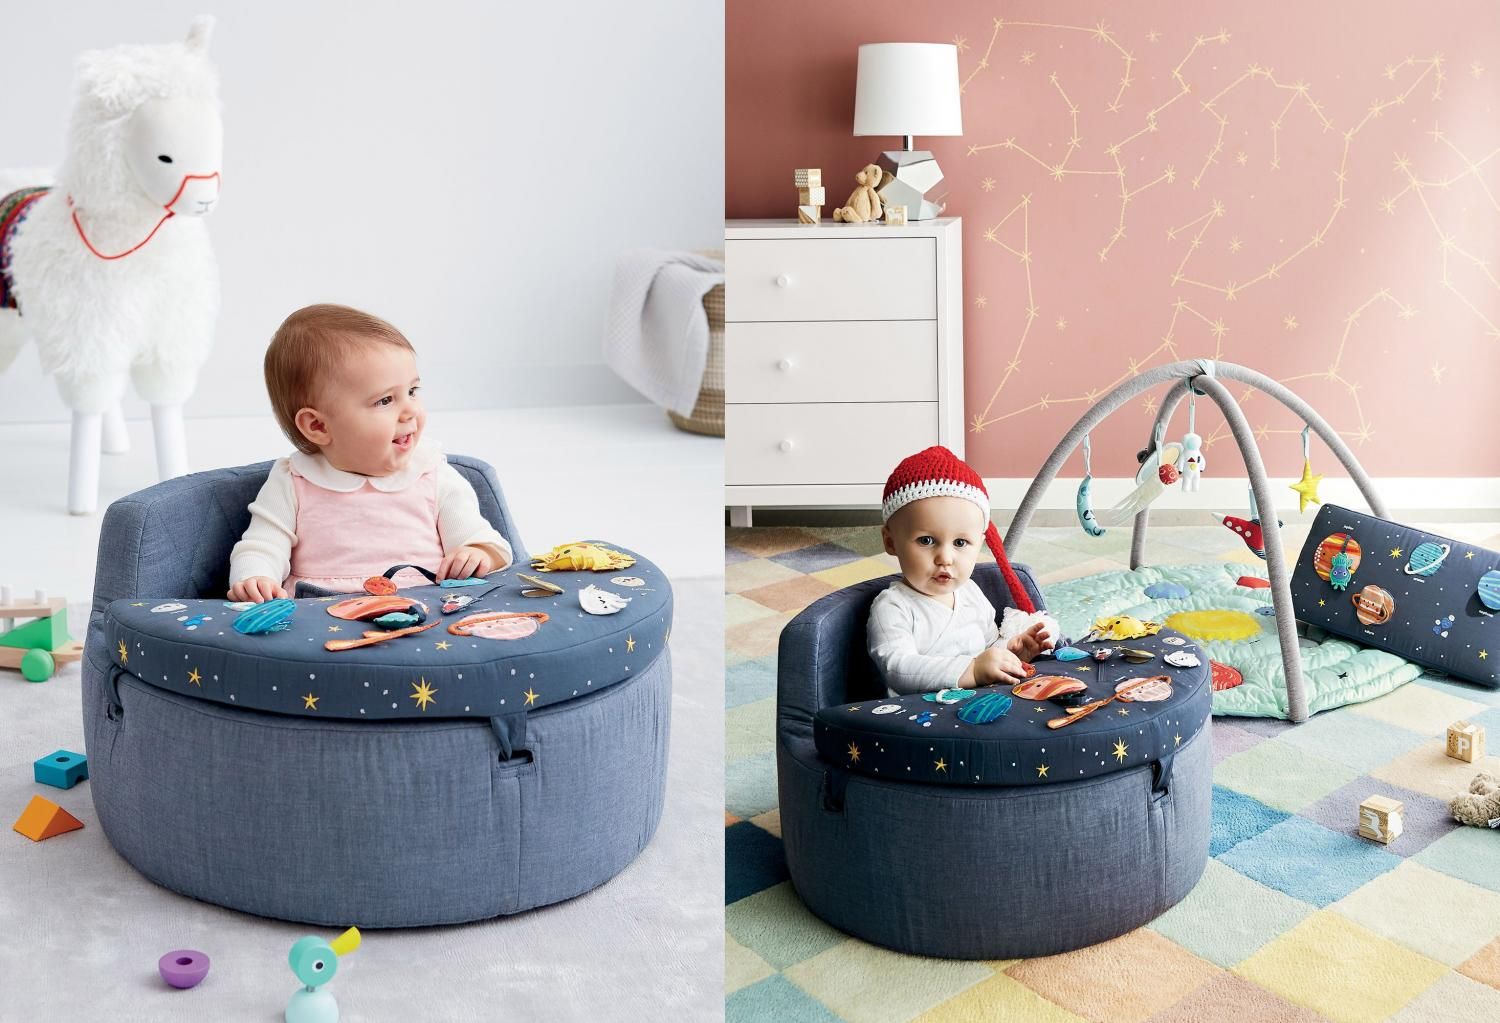 Cute Baby Activity Chair Helps Them Learn About Space And The Solar System - Deep Space Baby Activity Chair